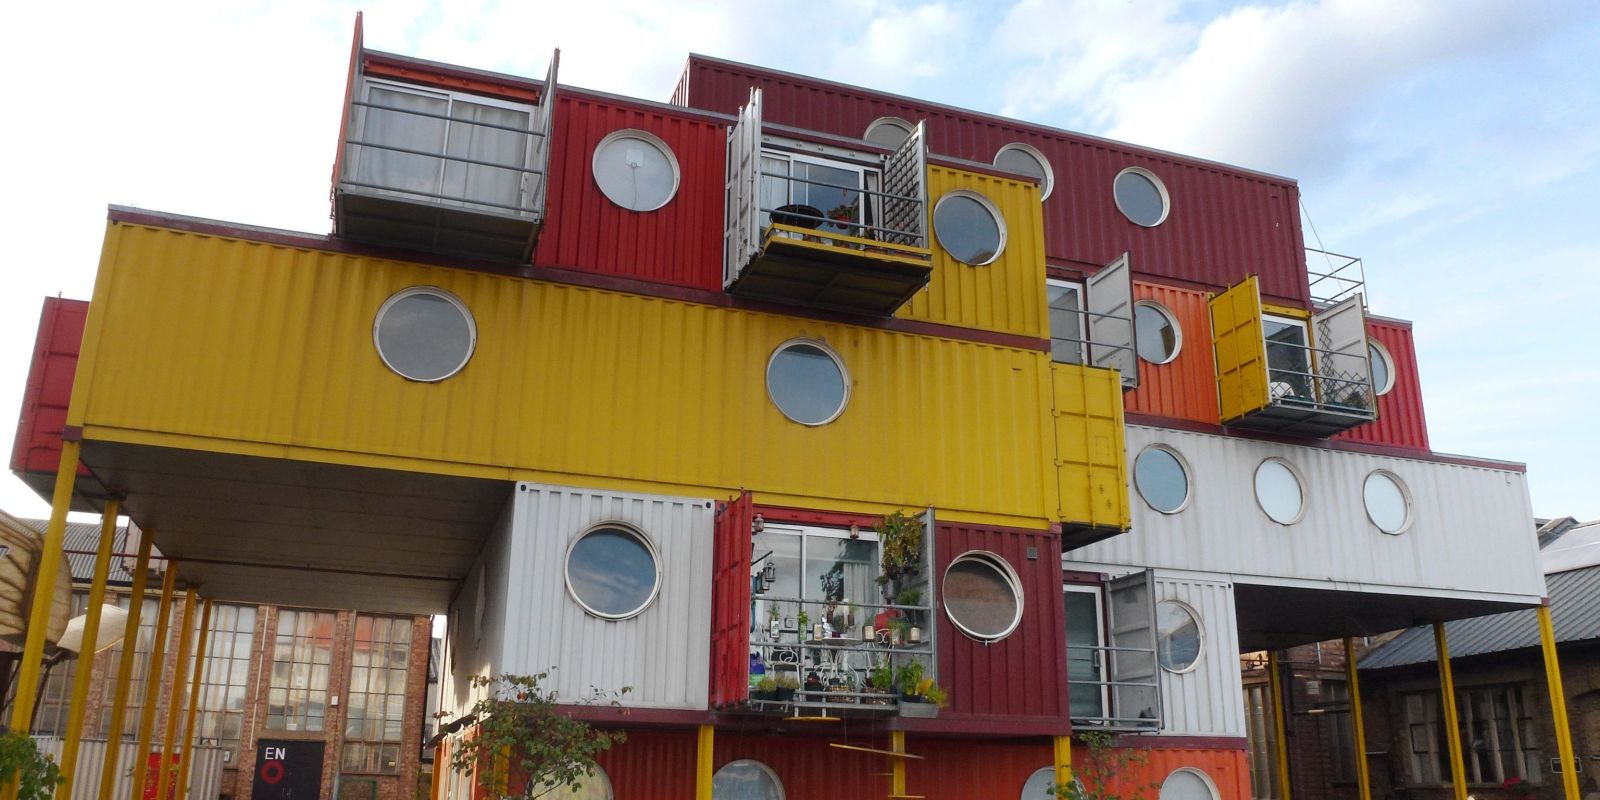 Container Building 45 shipping container homes & offices - cargo container houses